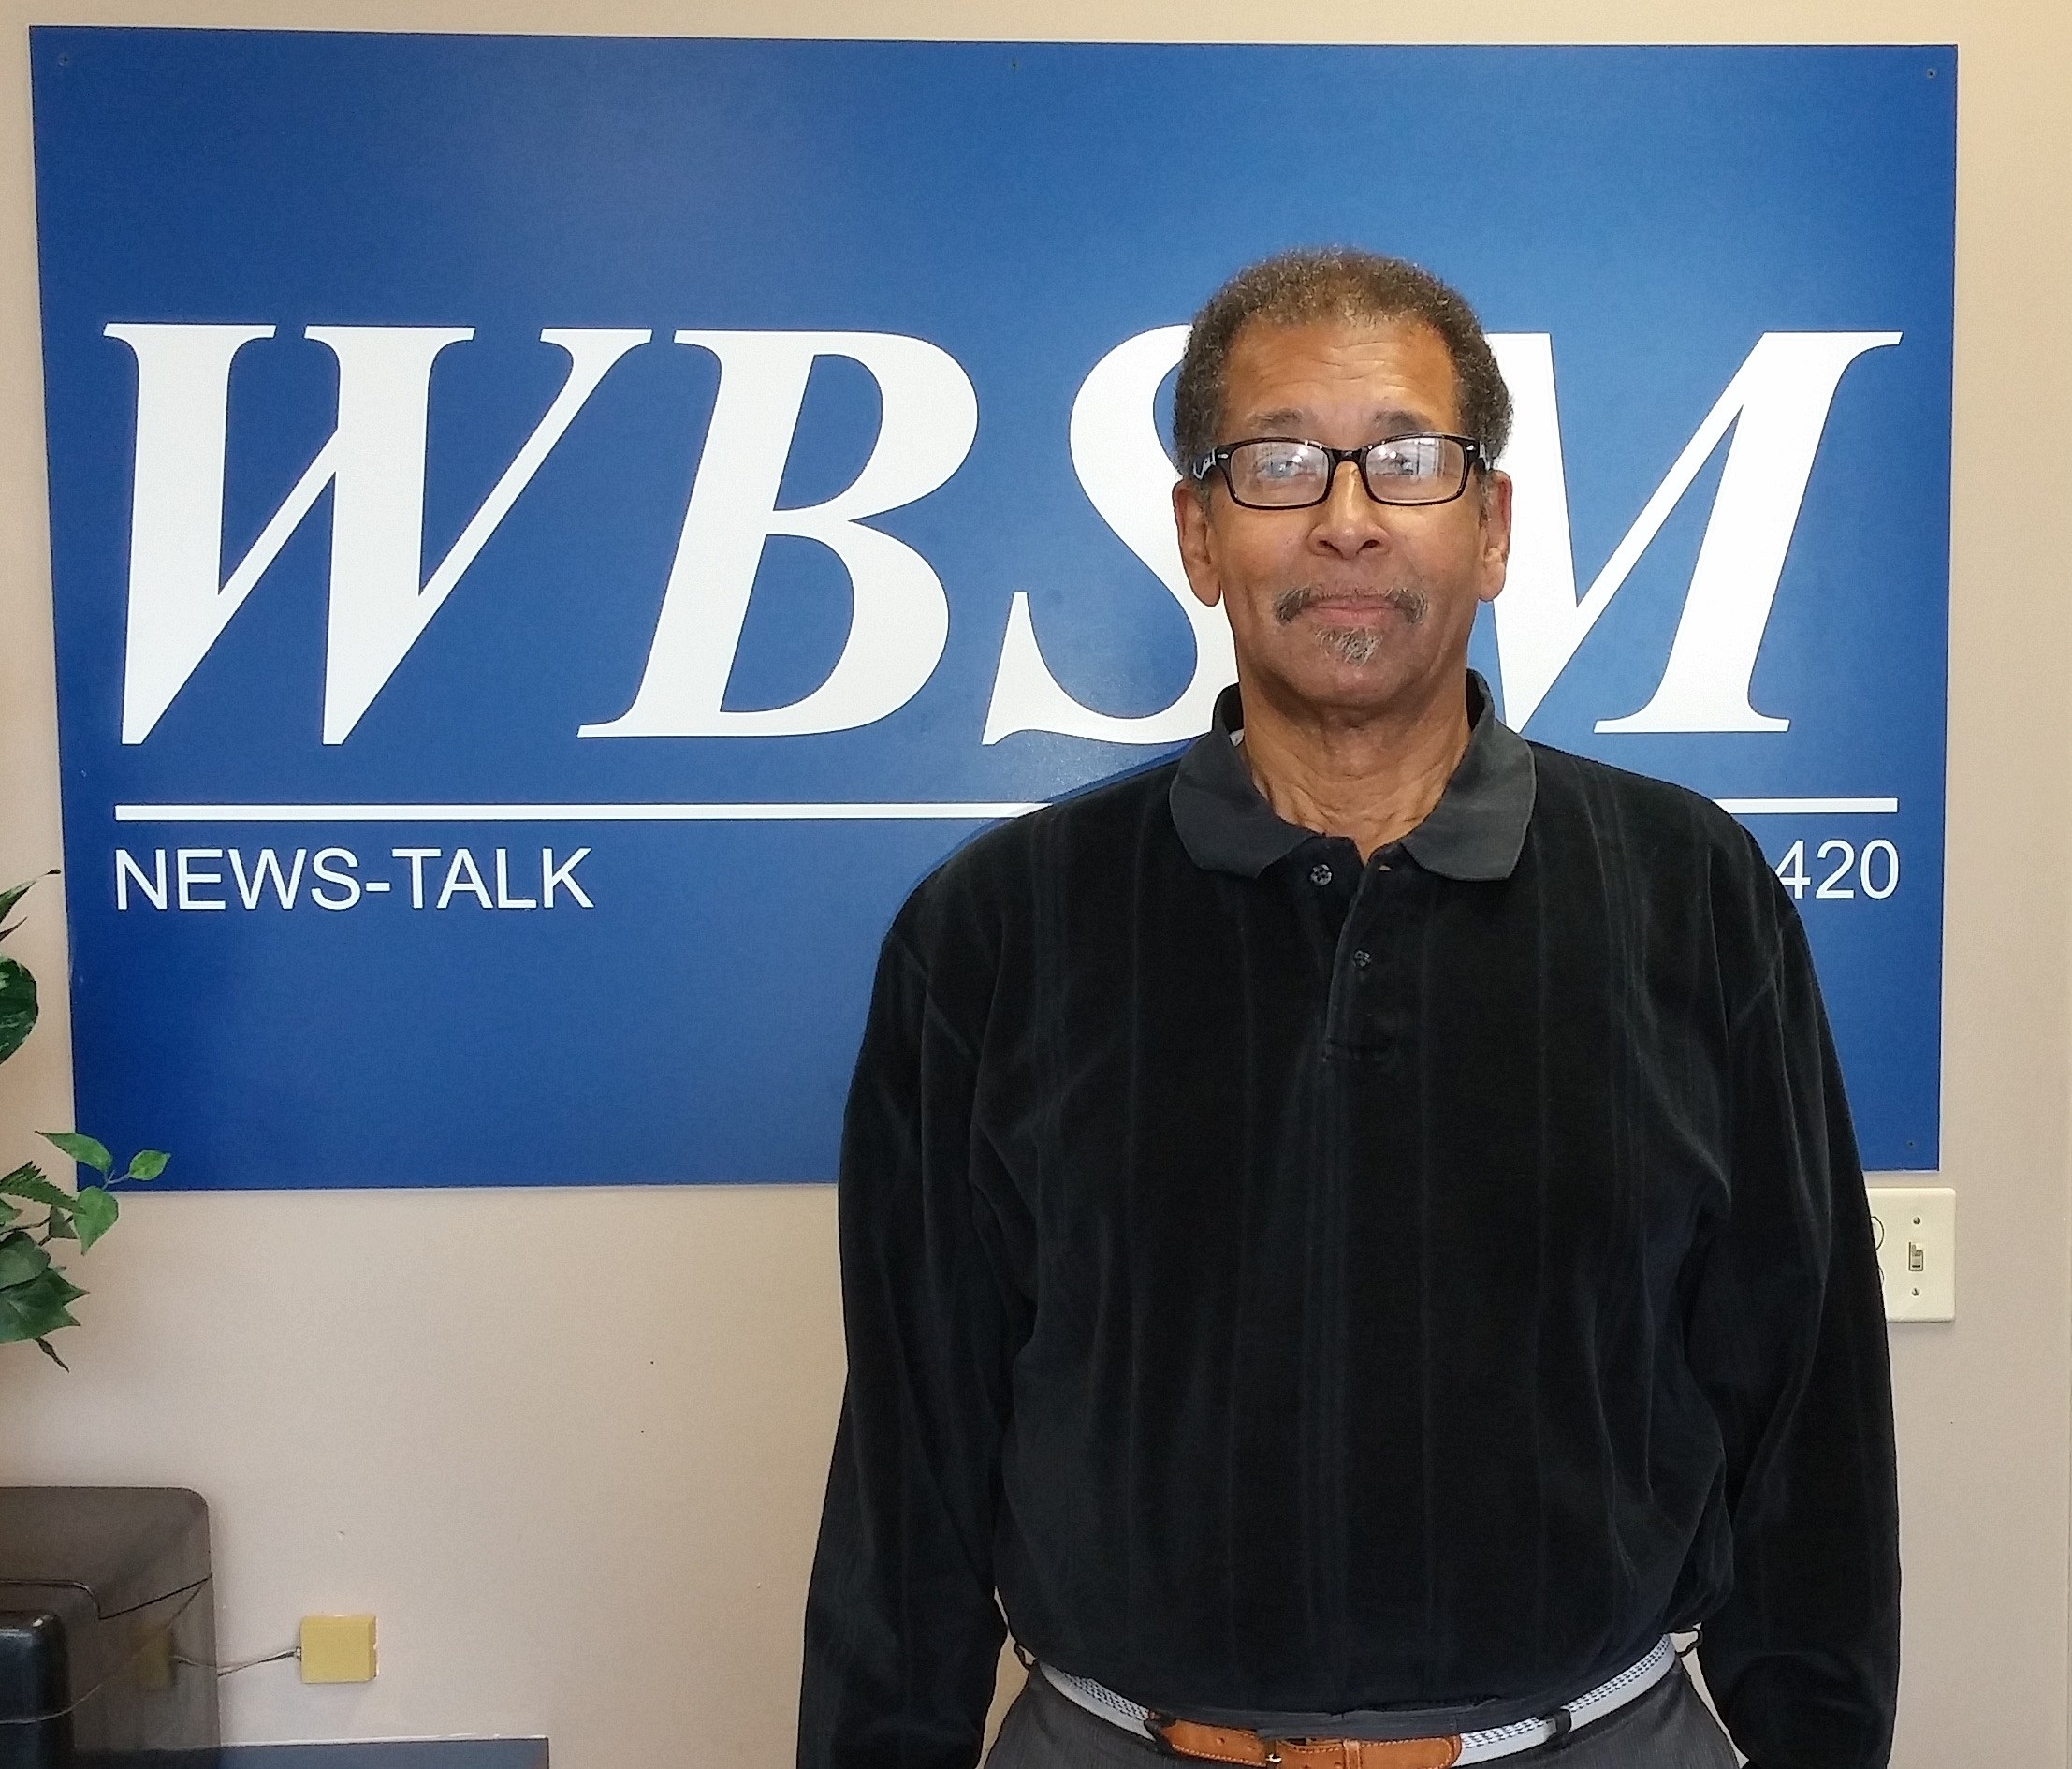 1420 WBSM – New Bedford's News, Talk and Sports Radio ? Page 1367